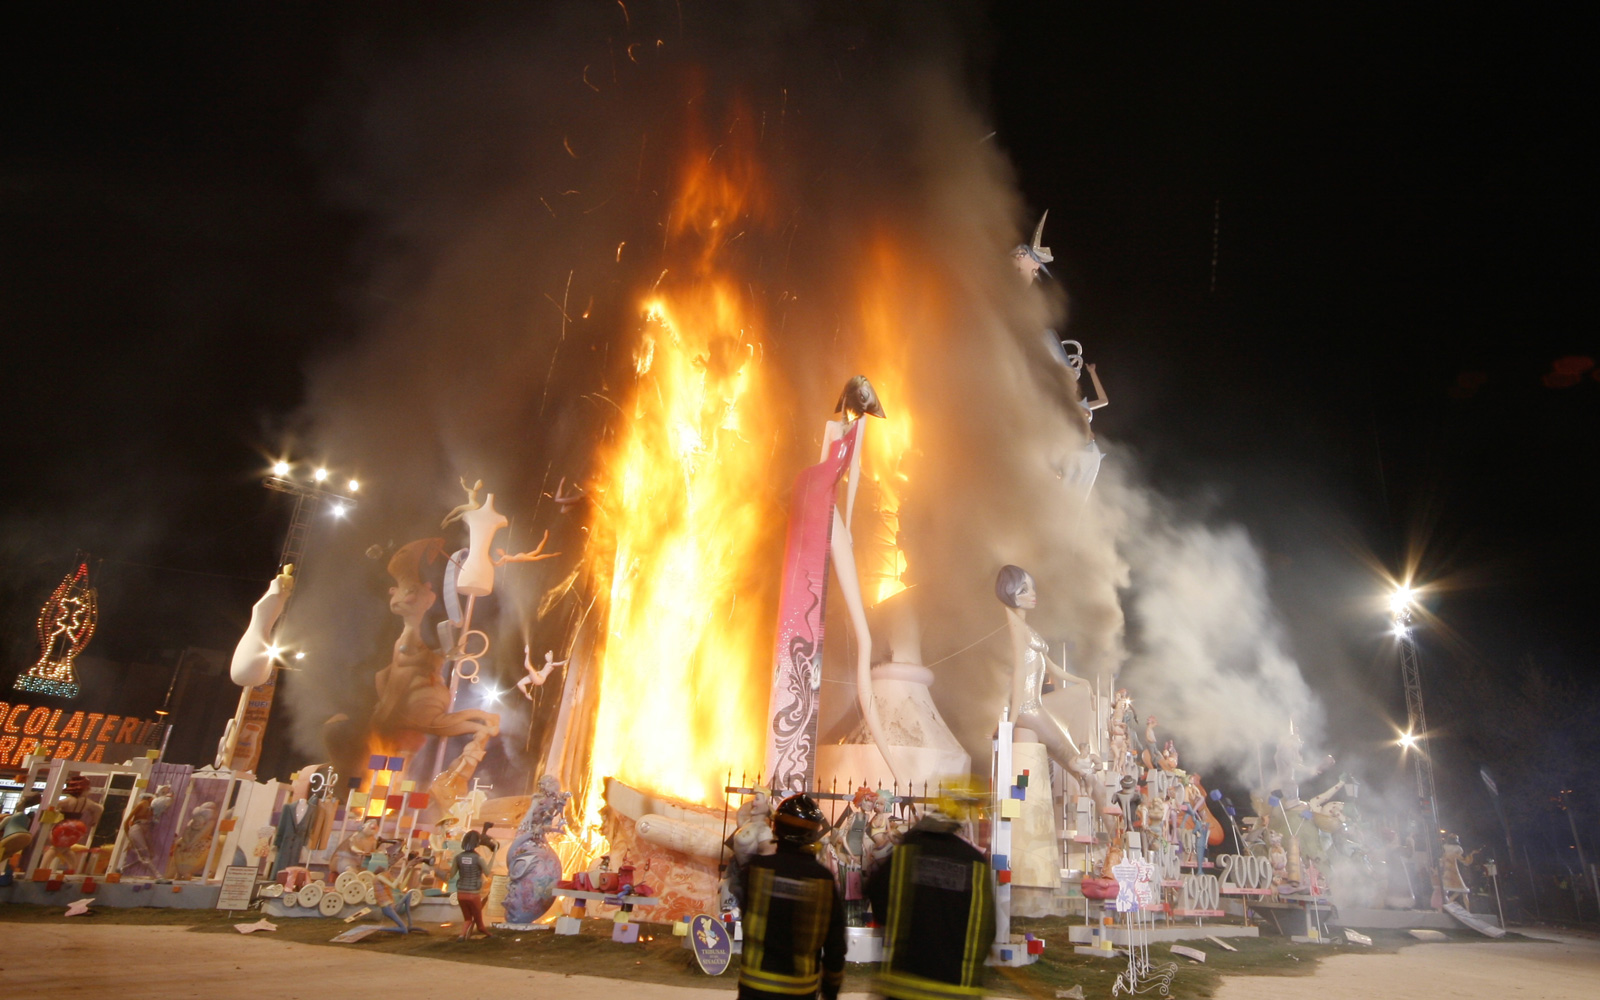 Las Fallas Festival in Spain